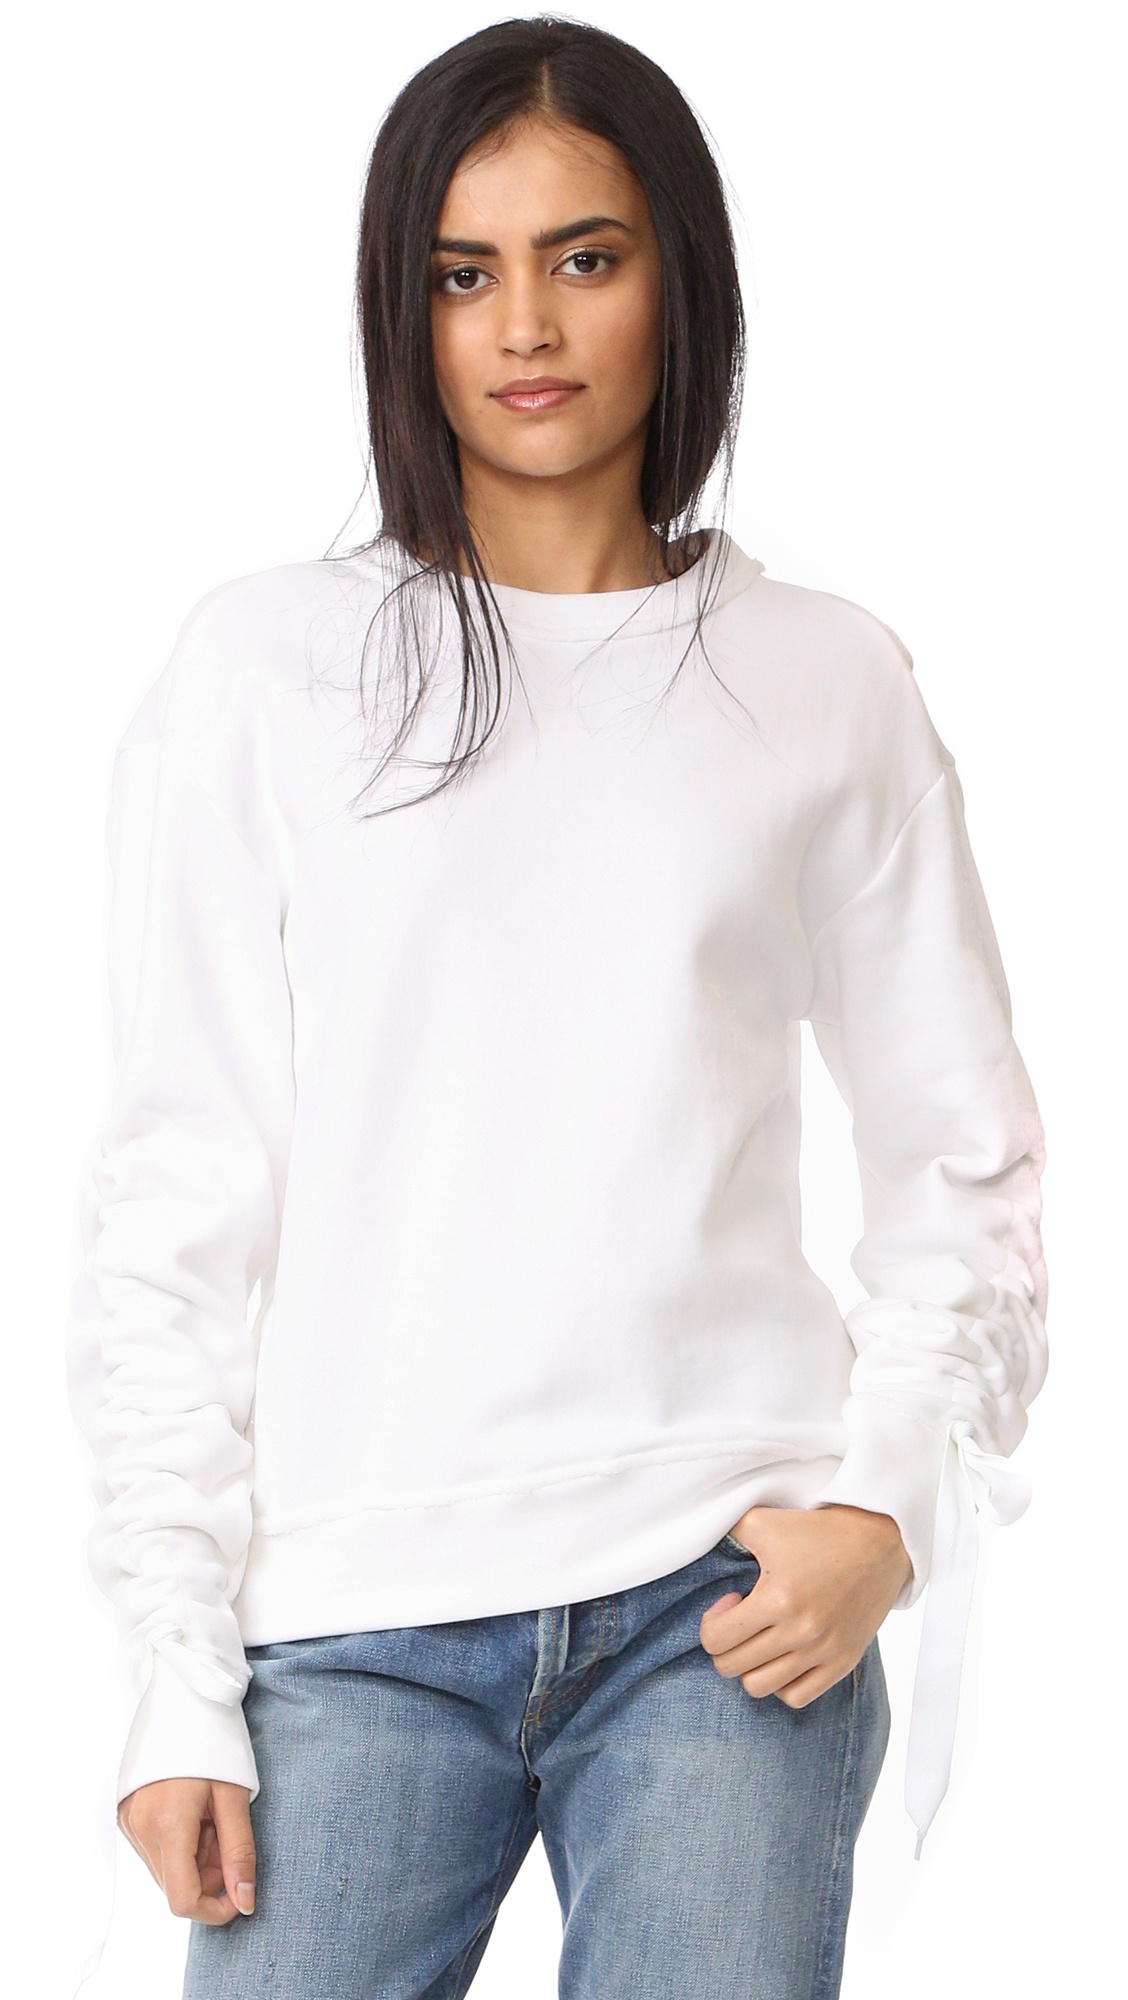 Dkny Pullover With Ruched Ties - White at Shopbop